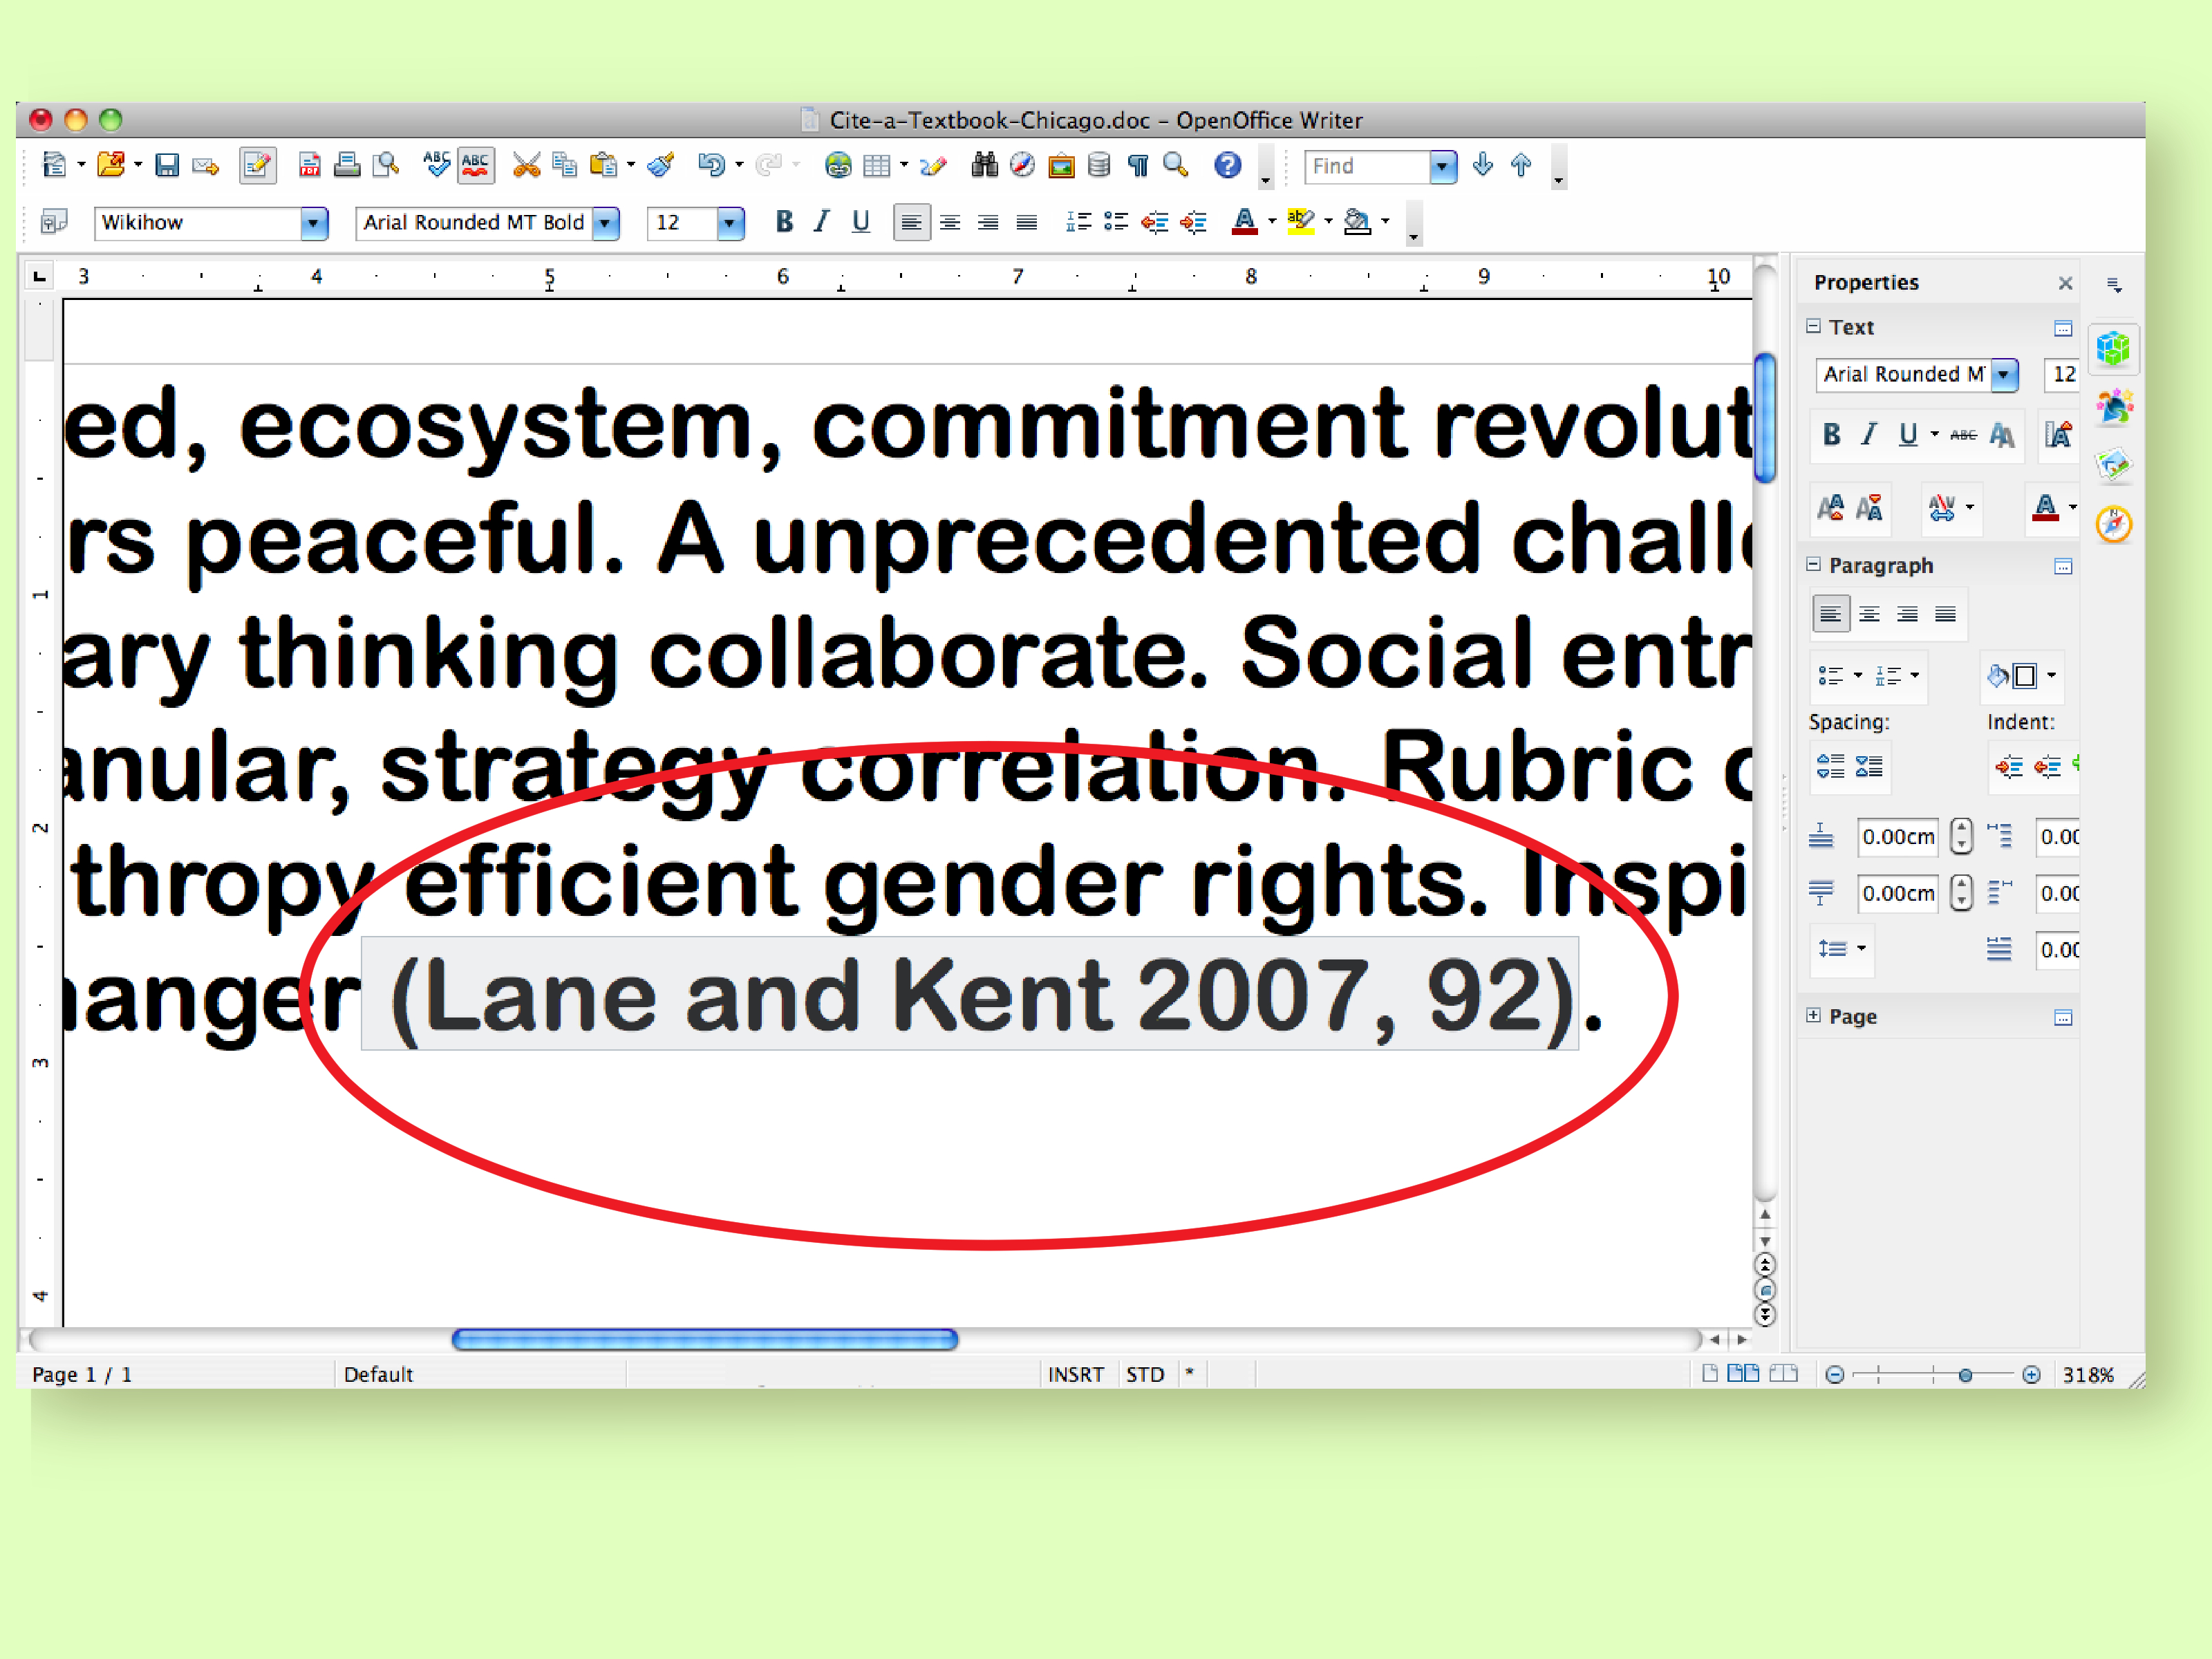 005 How To Cite An Essay In Book Mla Textbook Step Version Best A Article Style 8 Full